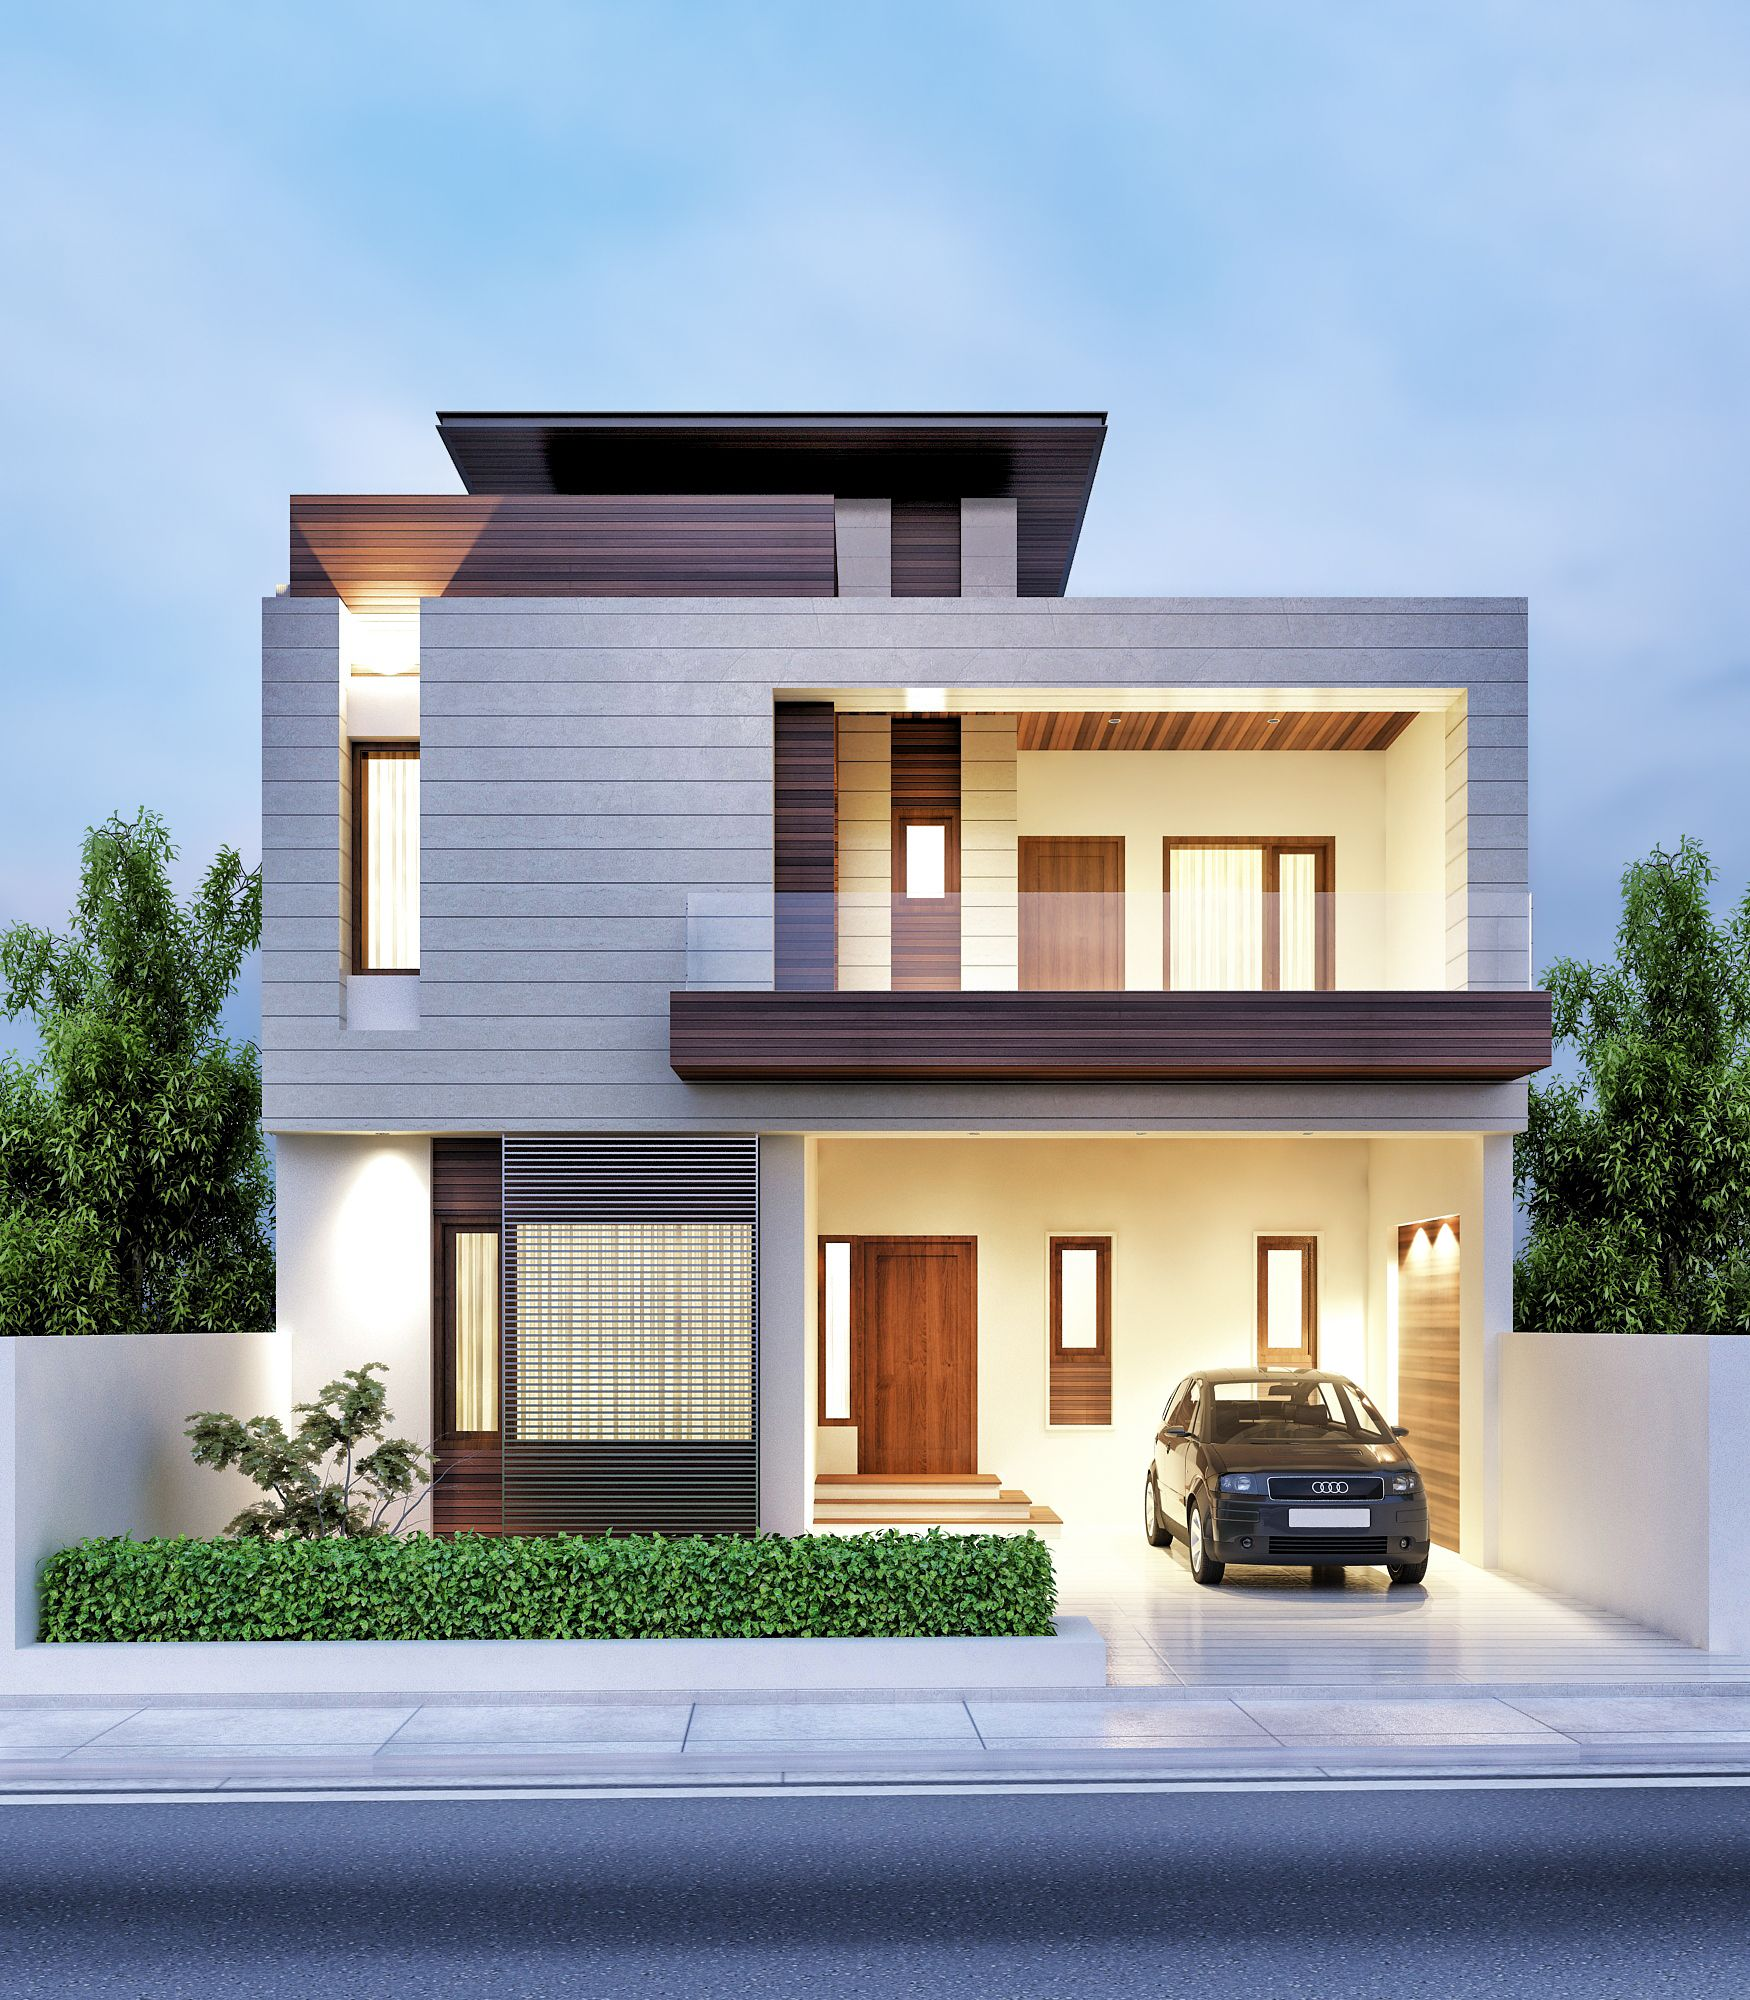 Architectural previsualization renders | Cool Homes | Pinterest ...